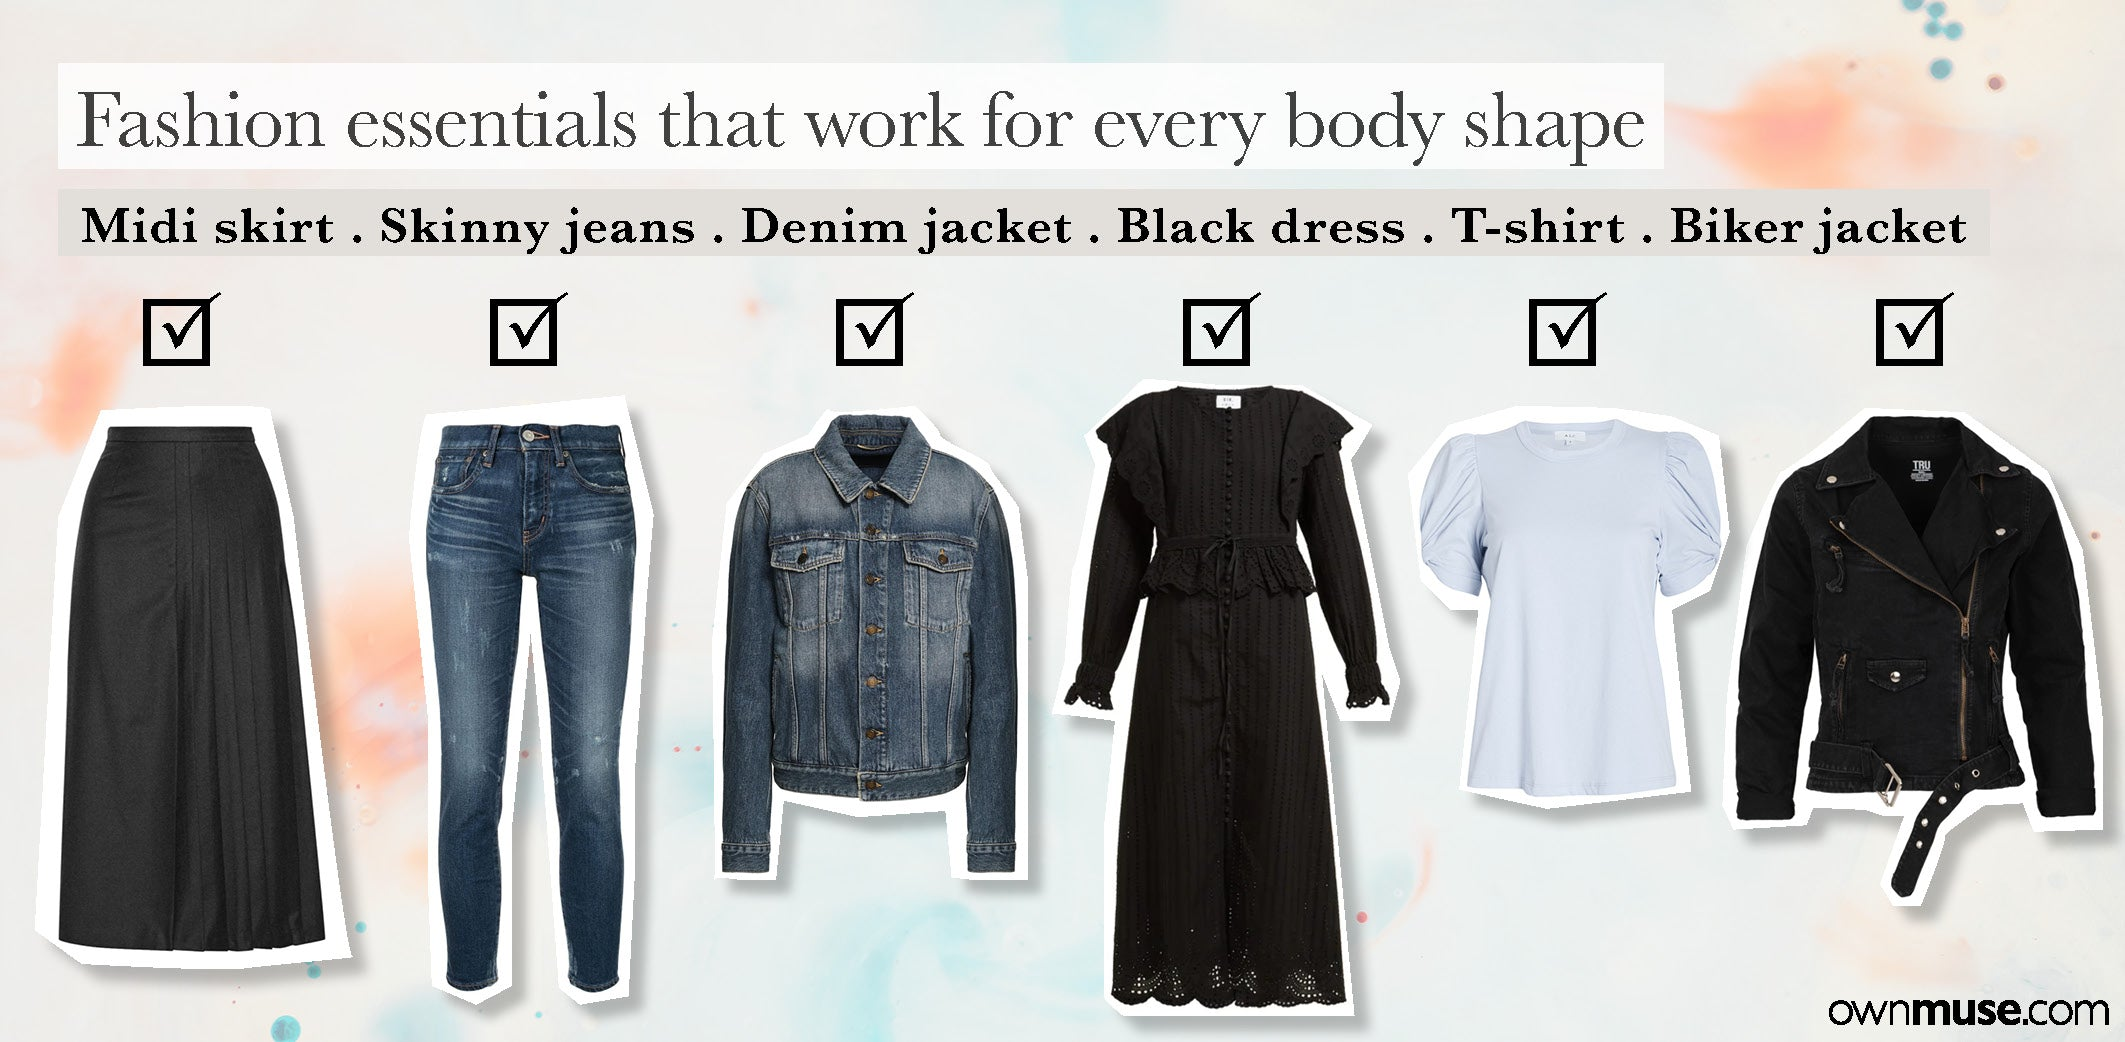 What Styles Suit My Body? Fashion essentials to suit your body shape